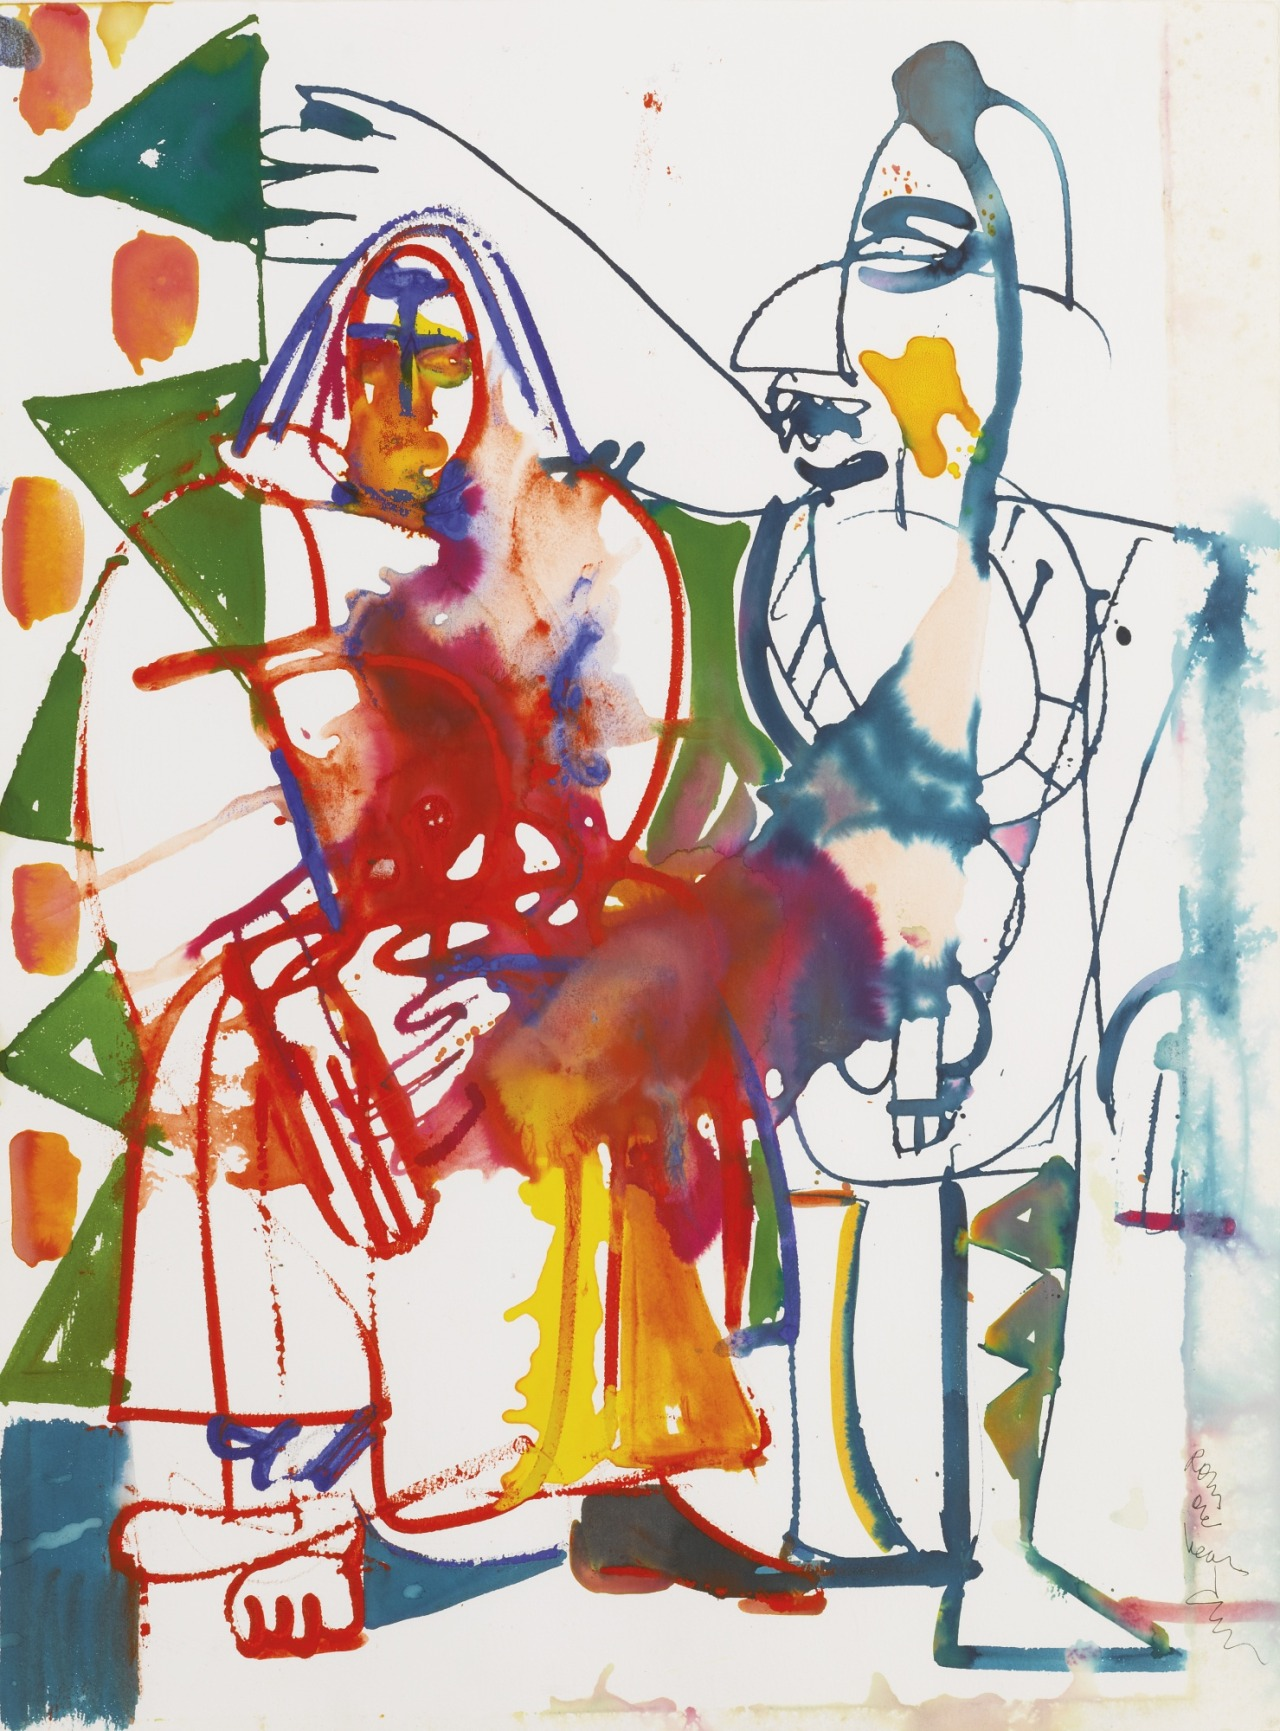 thunderstruck9:  Romare Bearden (American, 1911-1988), Obeah with Bird Loa, 1984. Watercolor on paper, 30 x 22 ¼ in.